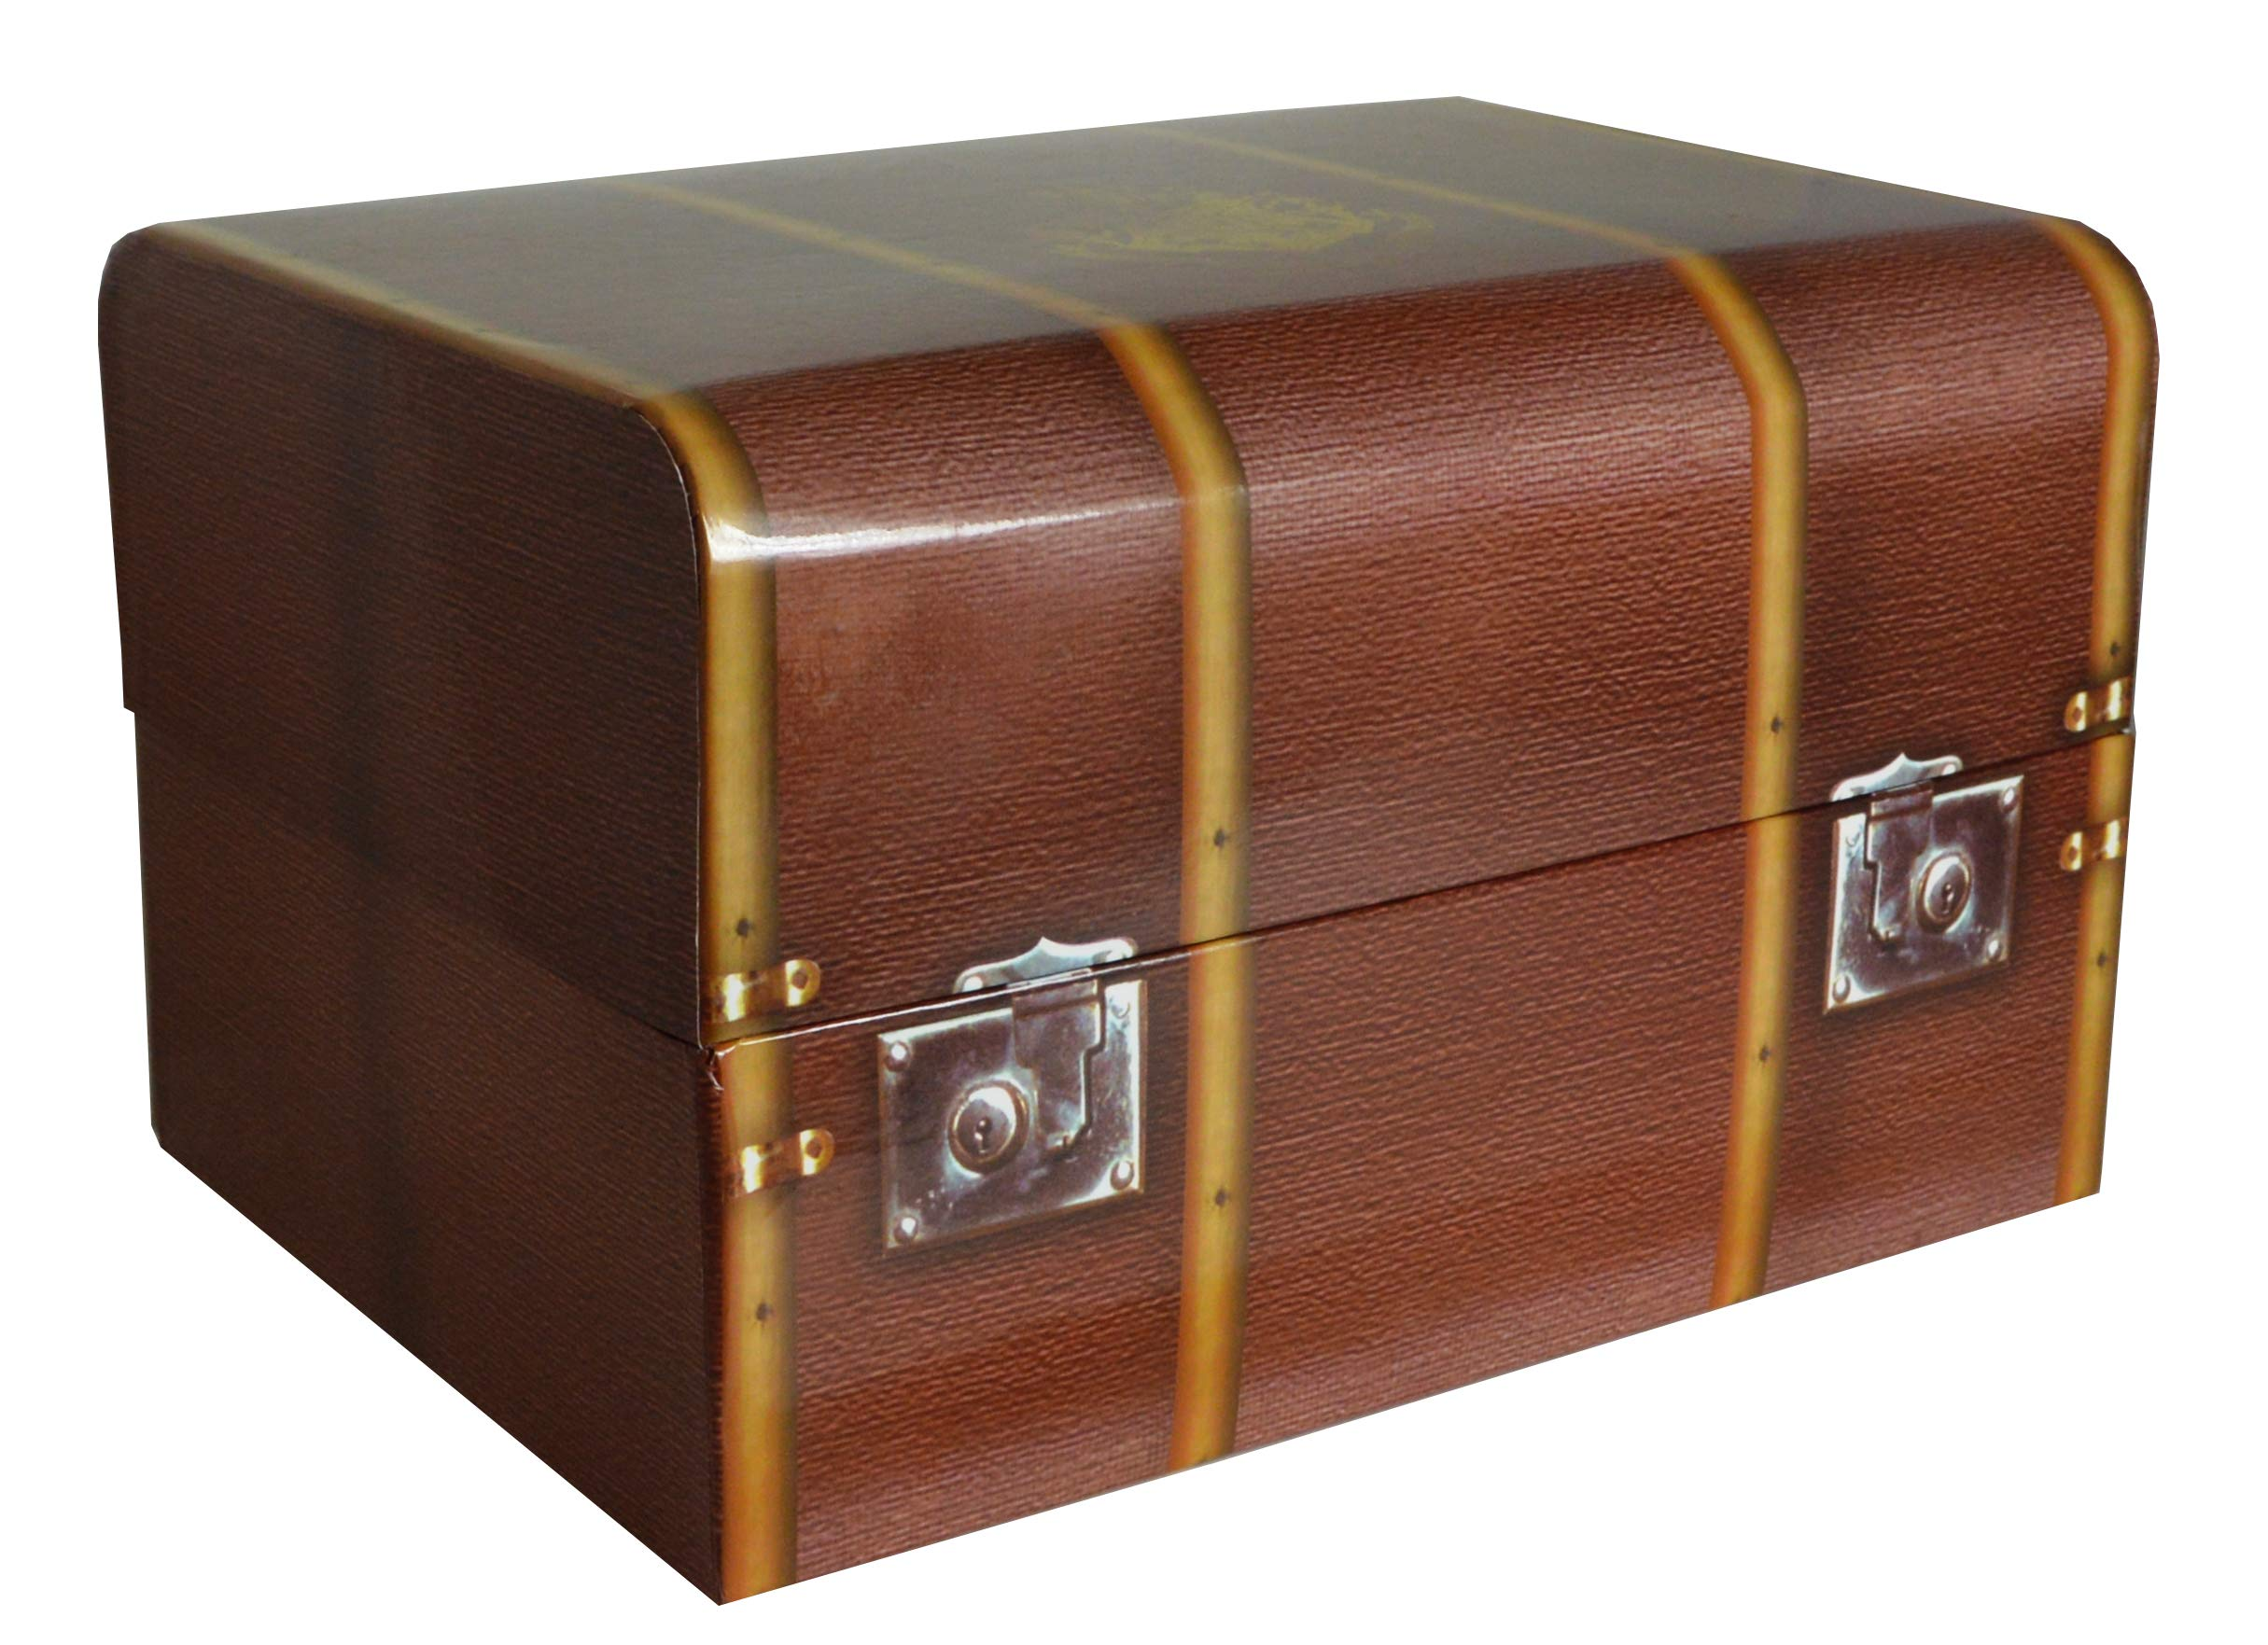 Rubie's Harry Potter Dress-Up Trunk by Imagine by Rubie's (Image #5)